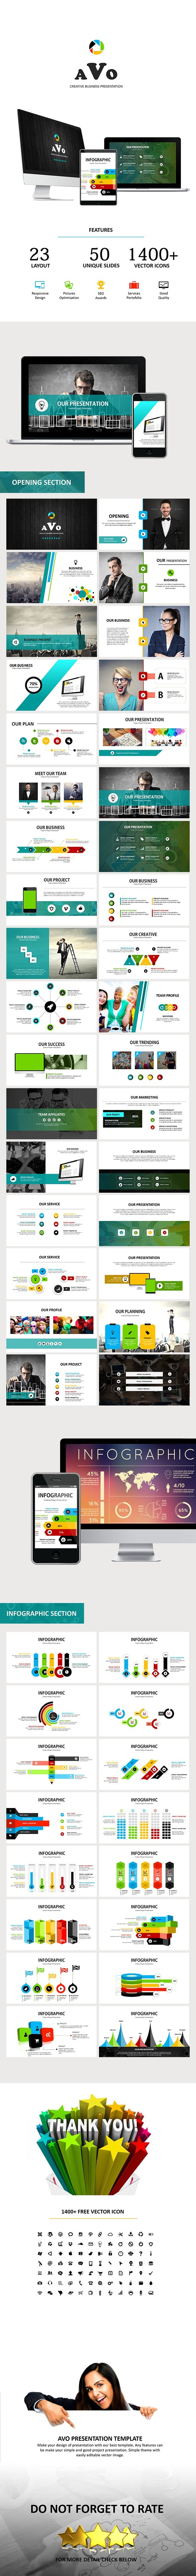 AVO - Keynote Business Presentation - Keynote Templates Presentation Templates